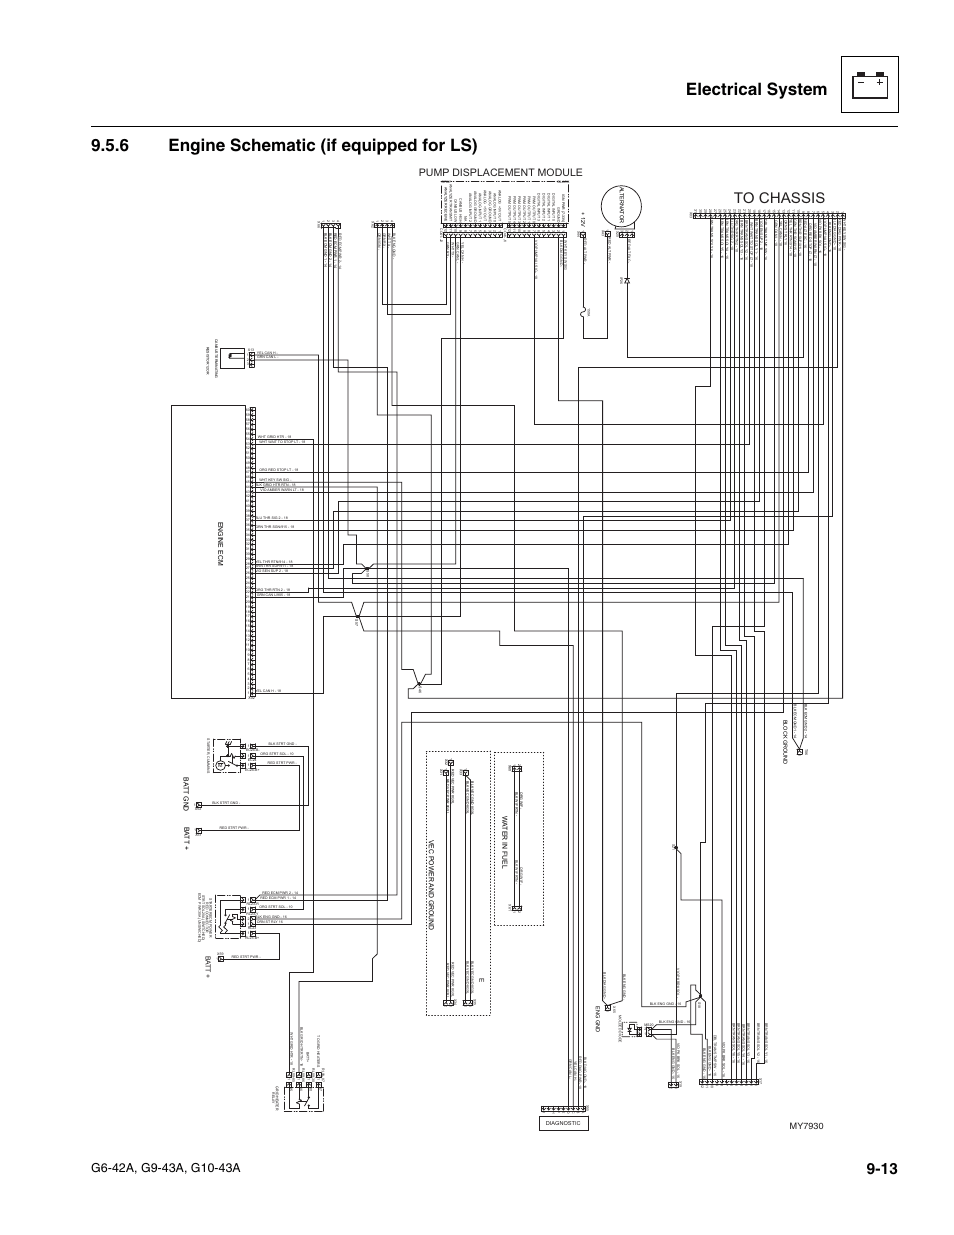 6 engine schematic (if equipped for ls), Engine schematic